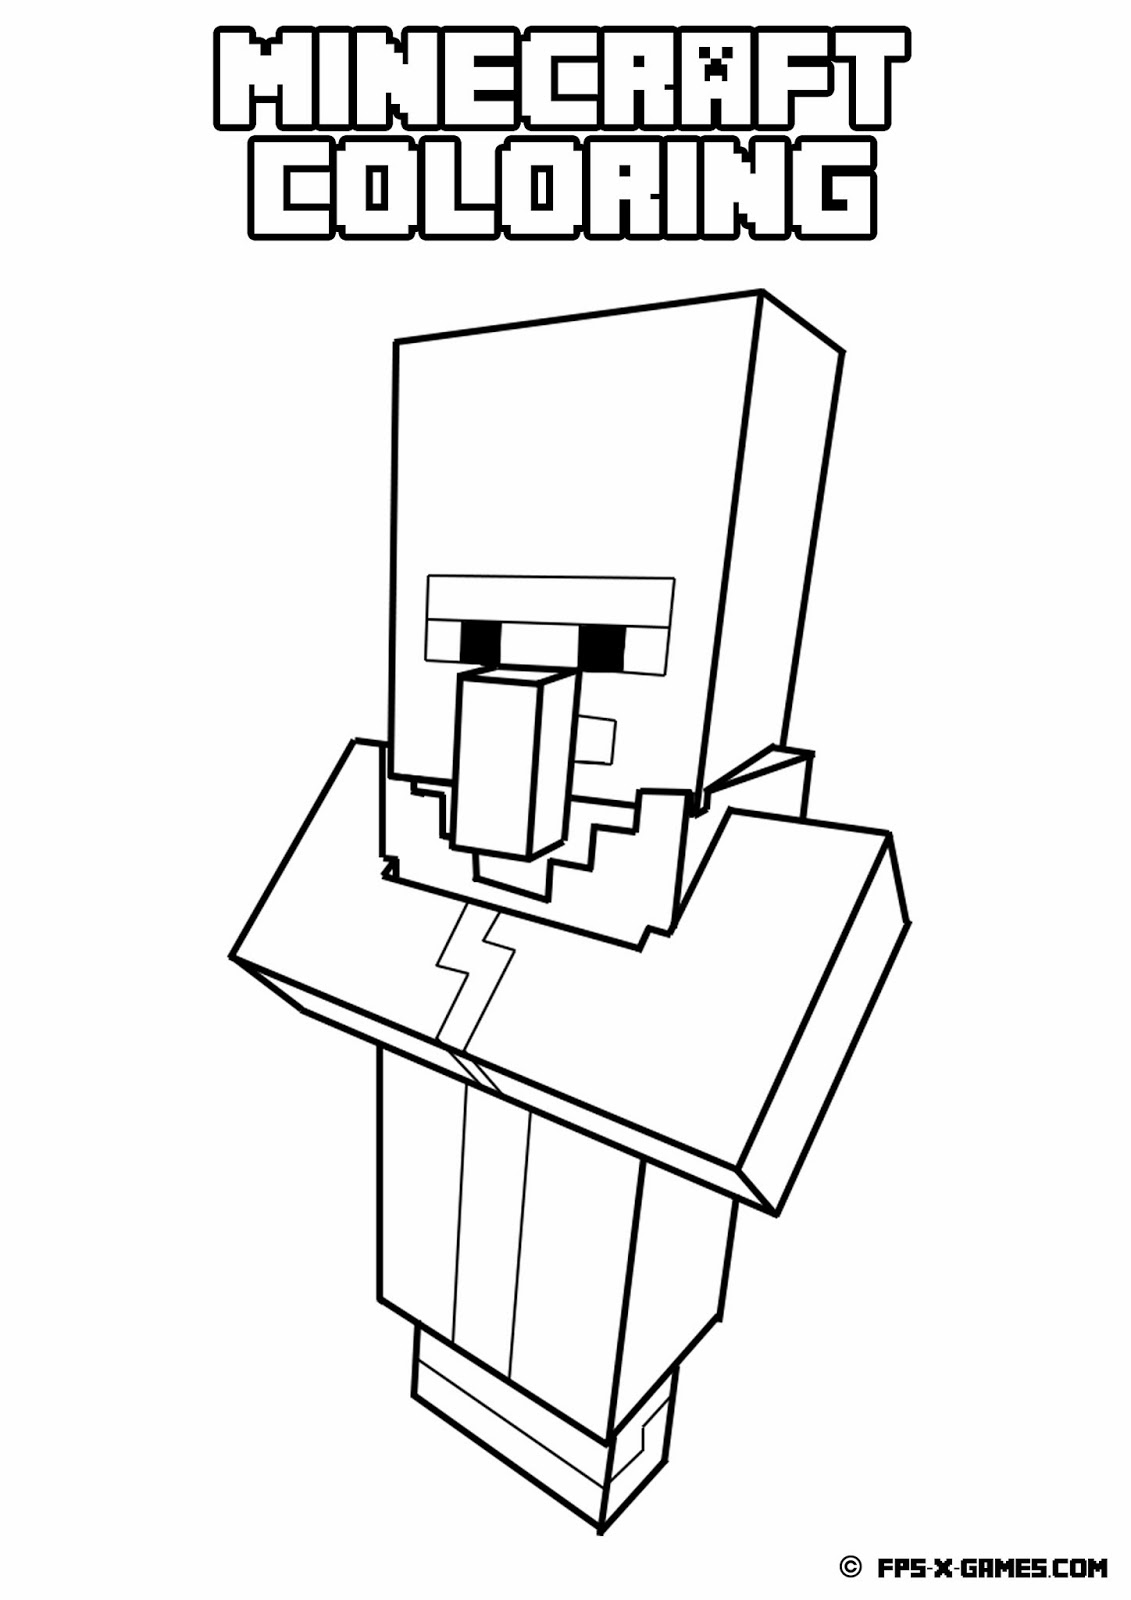 images of minecraft coloring pages minecraft coloring pages free large images of pages minecraft coloring images